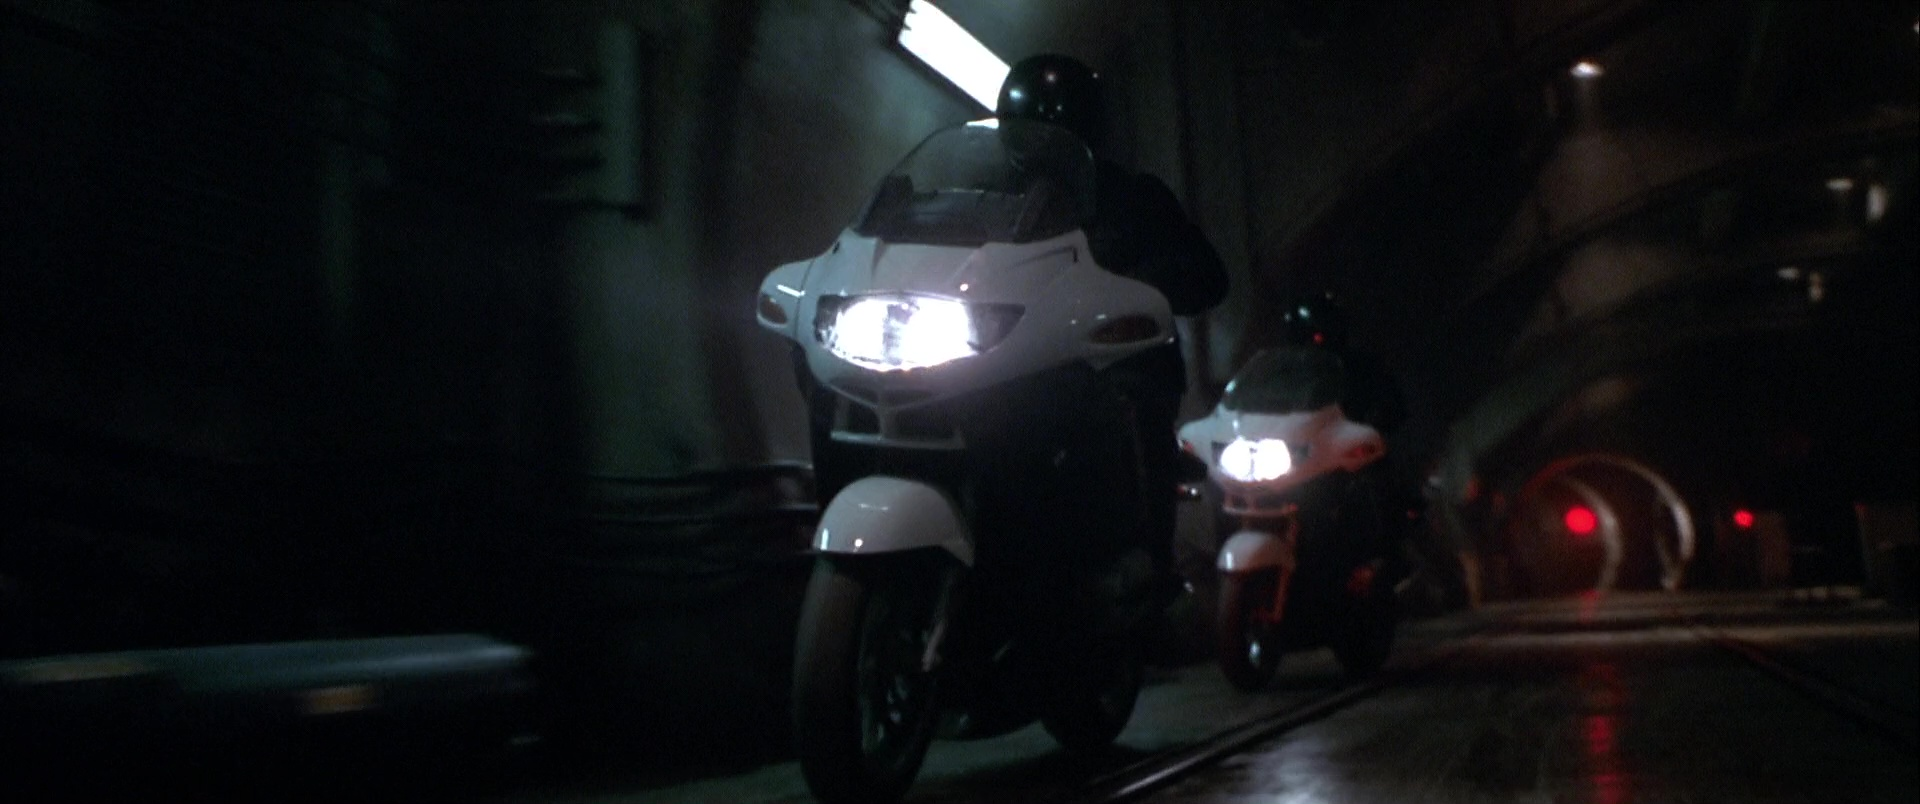 Bmw R1150rt Motorcycles In The Italian Job 2003 Movie Scenes